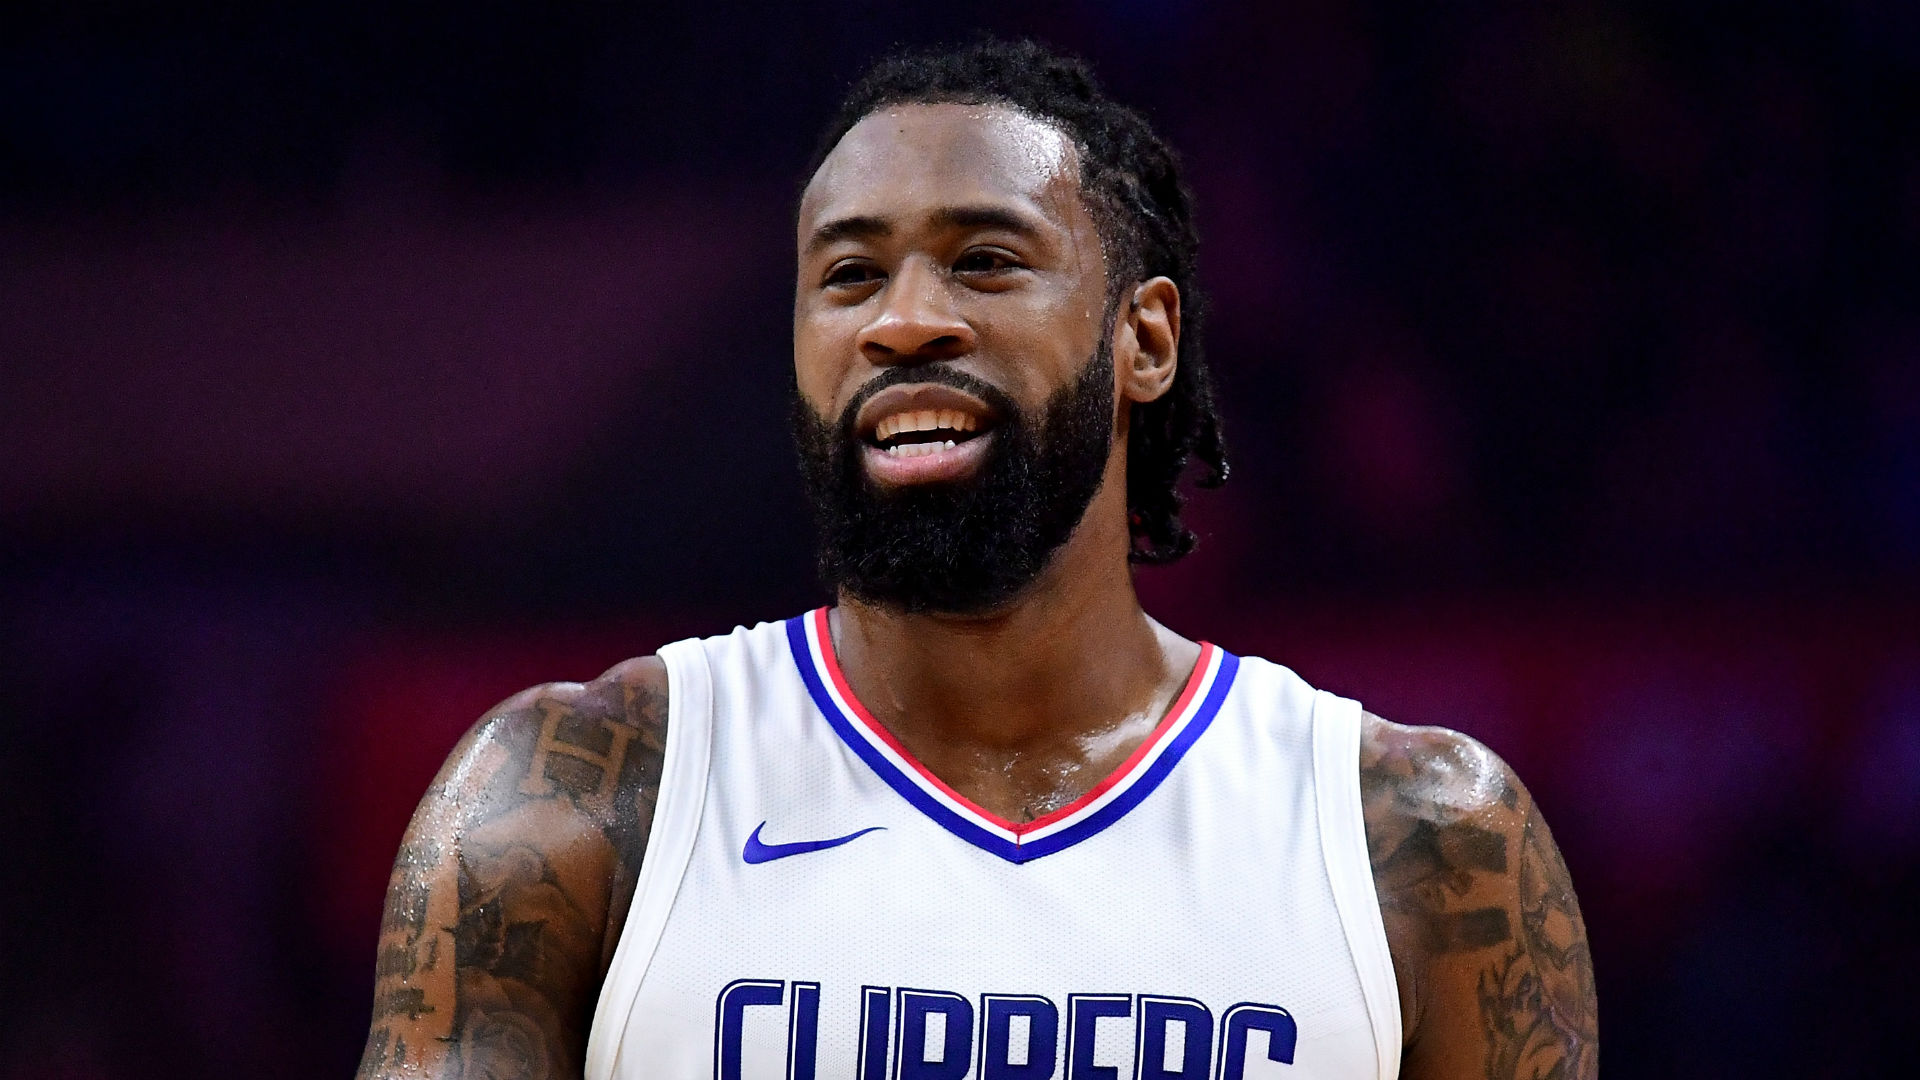 DeAndre Jordan opts out of deal with Clippers